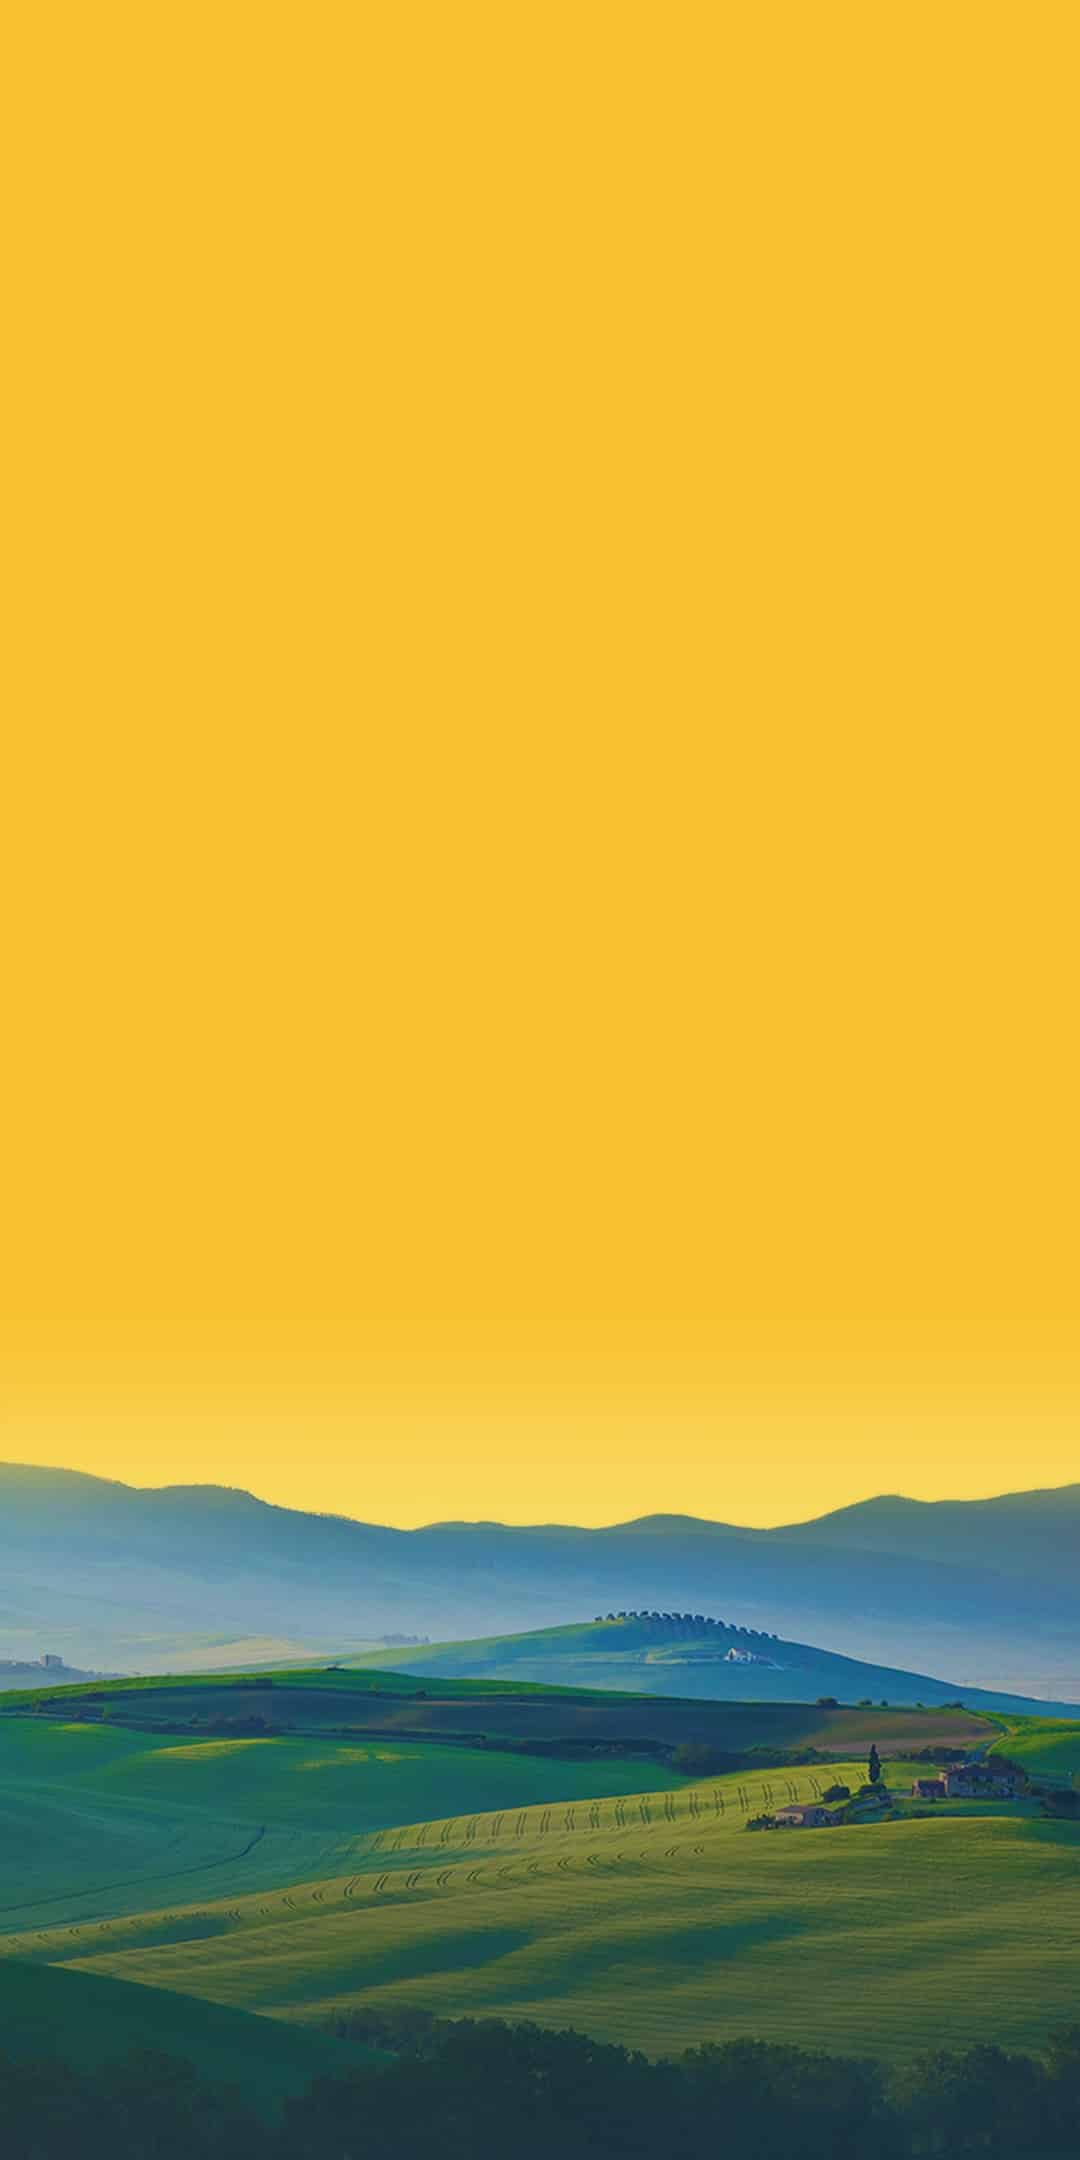 LG-Q6-Stock-Wallpapers